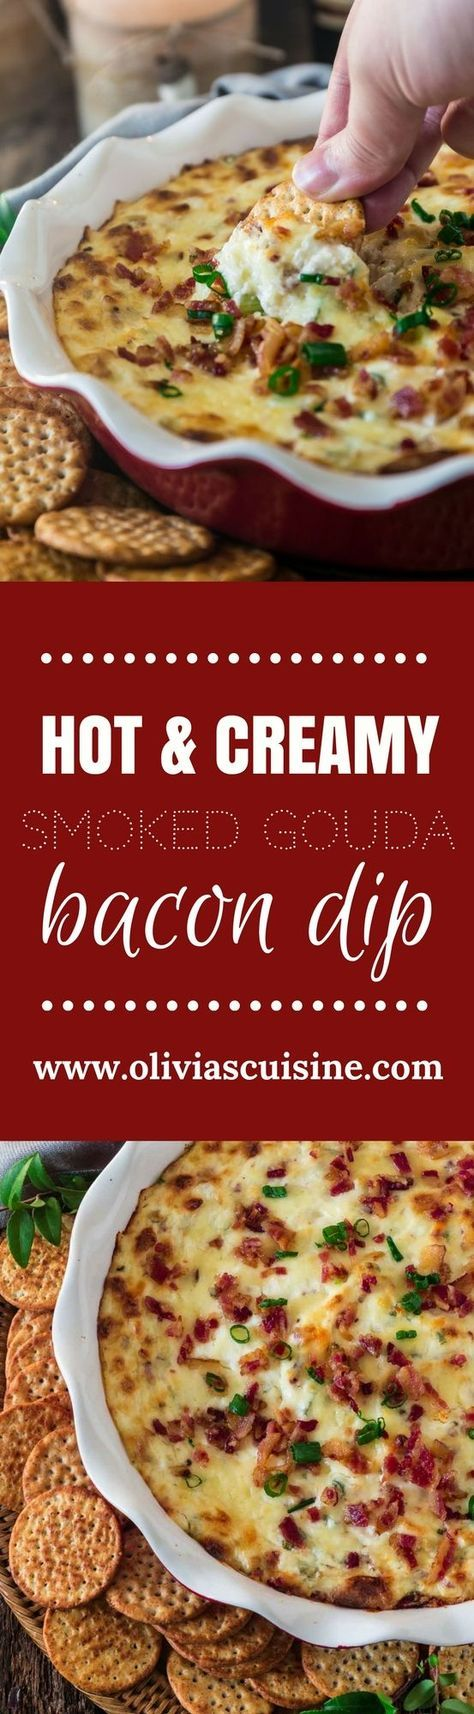 Hot Smoked Gouda Bacon Dip | Creamy, gooey and loaded with everyone's favorite ingredient, bacon, this Hot Smoked Gouda Bacon Dip is destined to be the star of your holiday party! Pair it with some good wine and you're on the road to success.